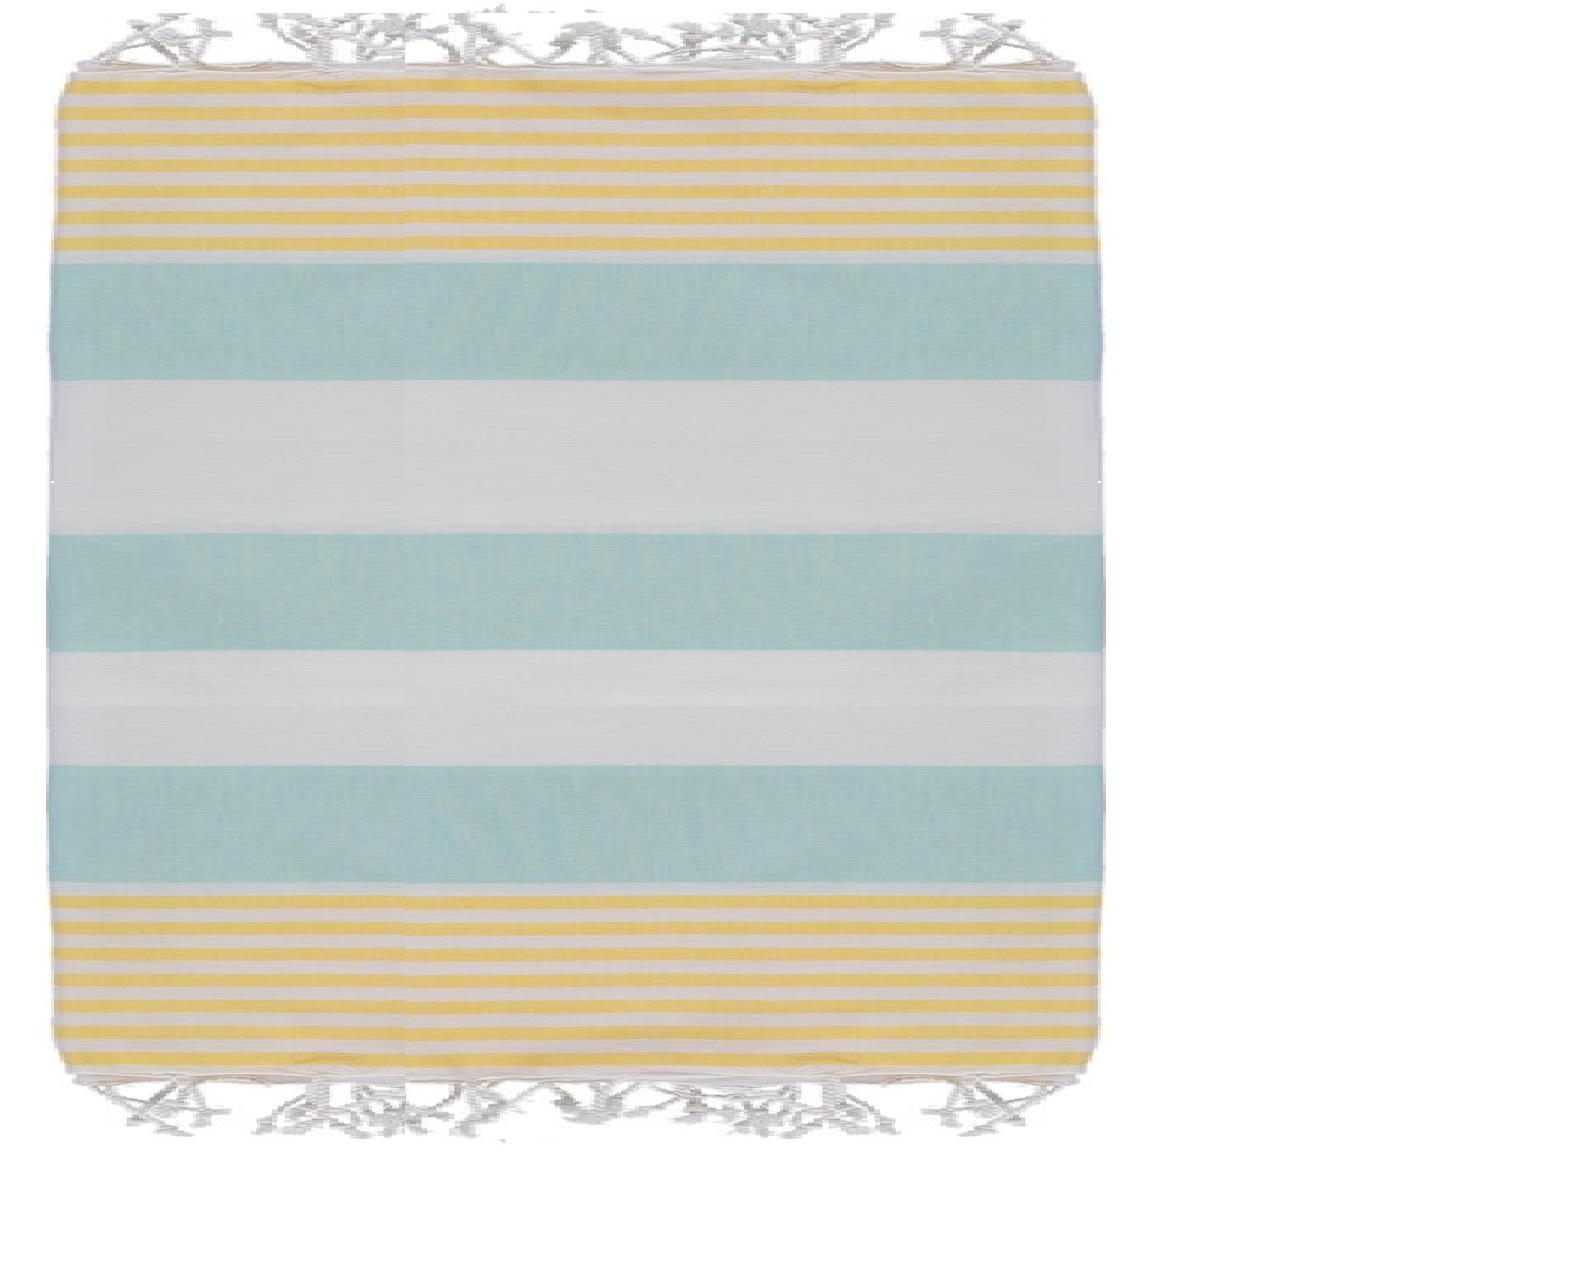 Coastal Colors Mint Yellow and White Blanket – Sun of a Beach Towels